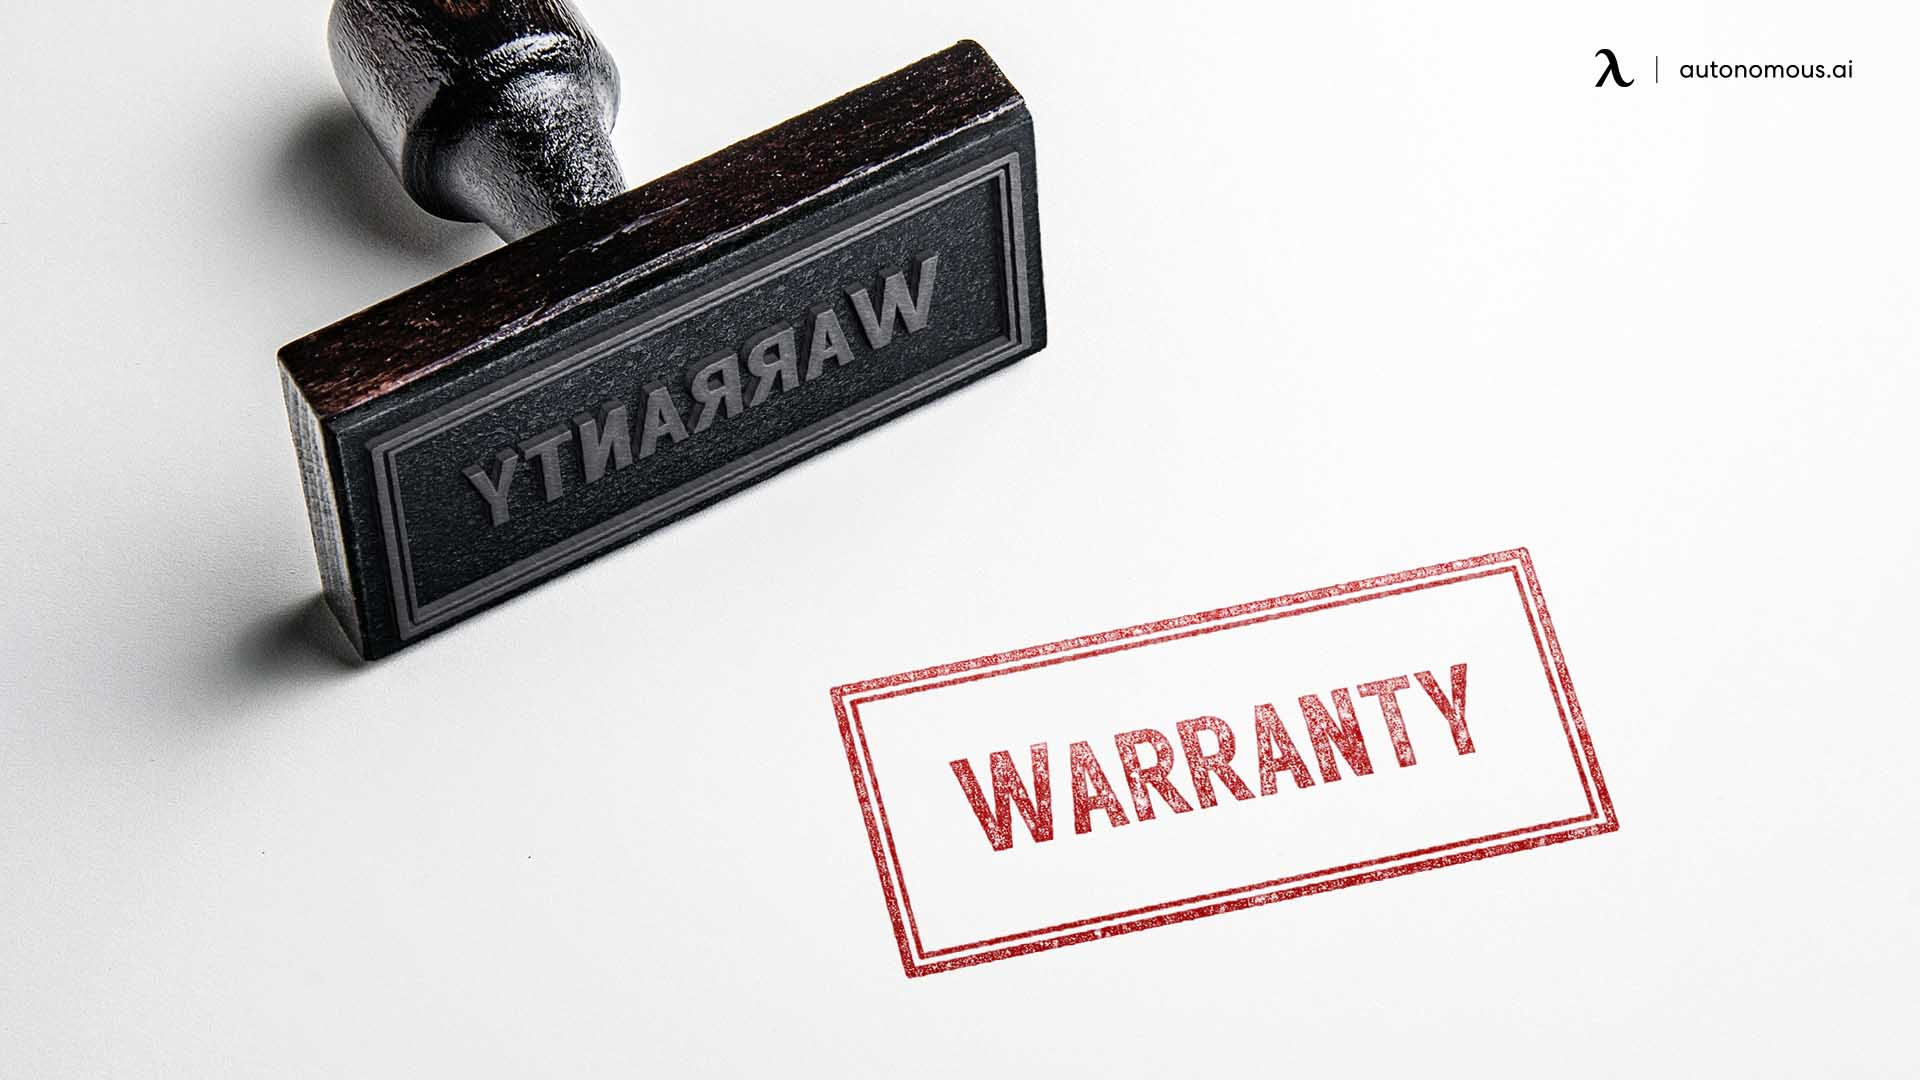 Make and Warranty